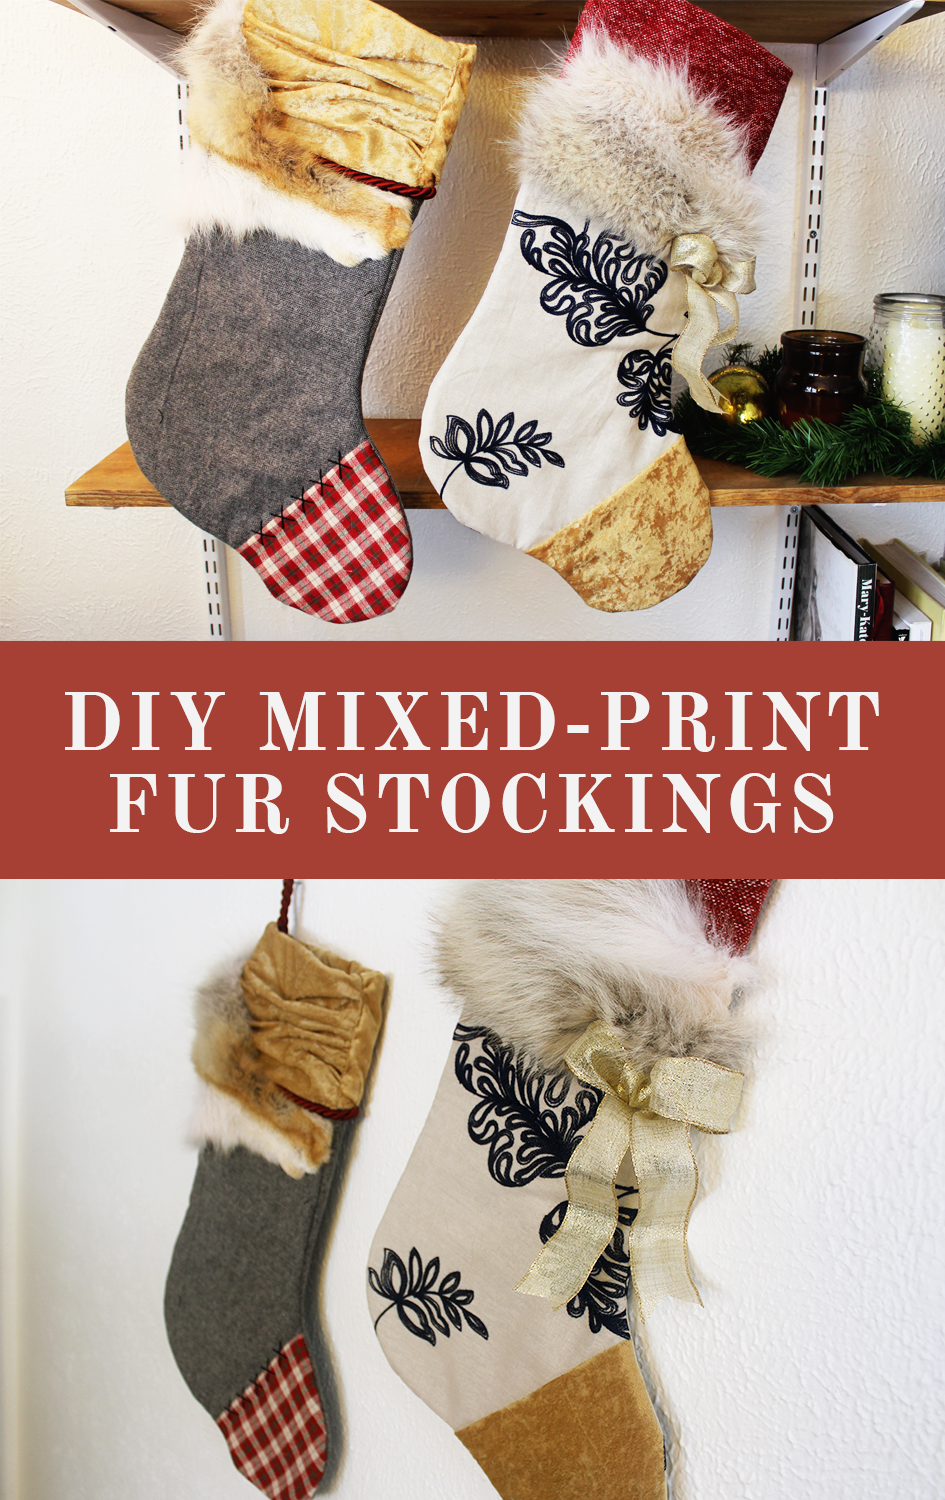 DIY Mixed Print Stockings | via: www.npdodge.com